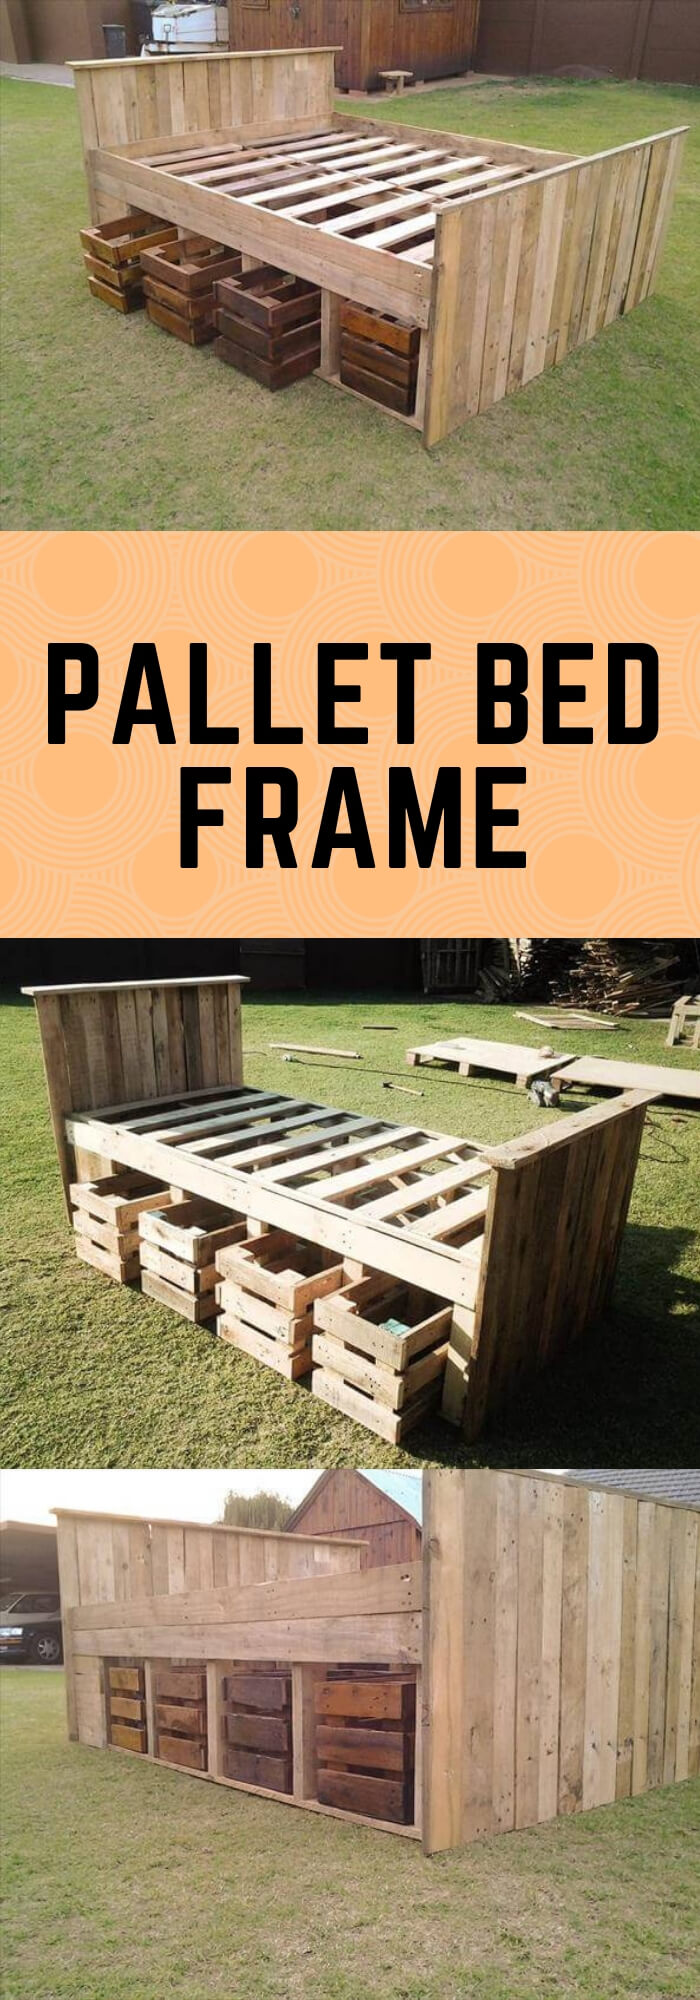 Crate Bedroom Storage | Best DIY Wood Crate Projects & Ideas